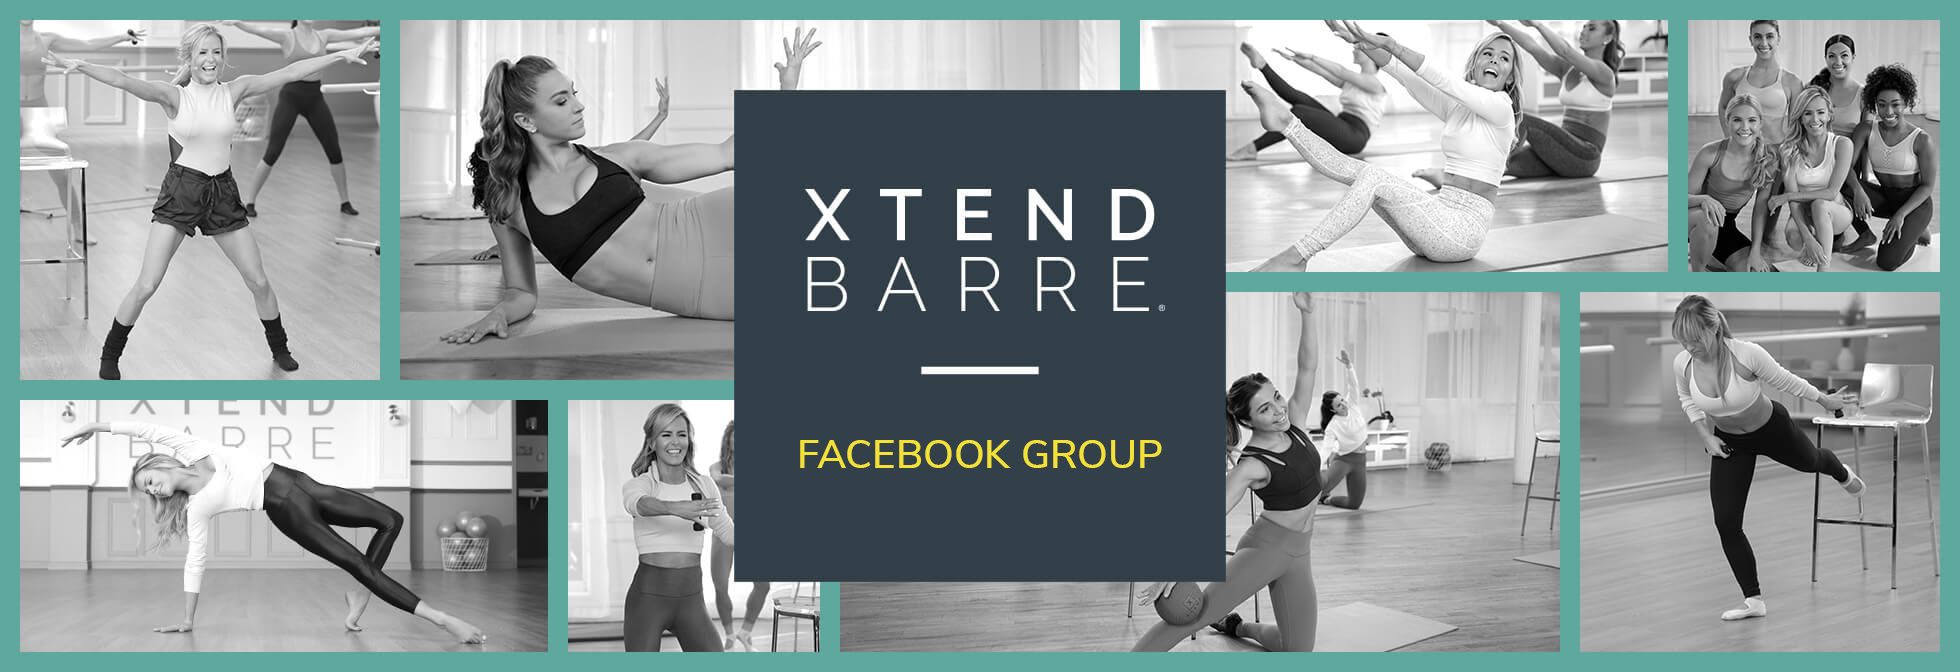 Xtend Barre Facebook Group